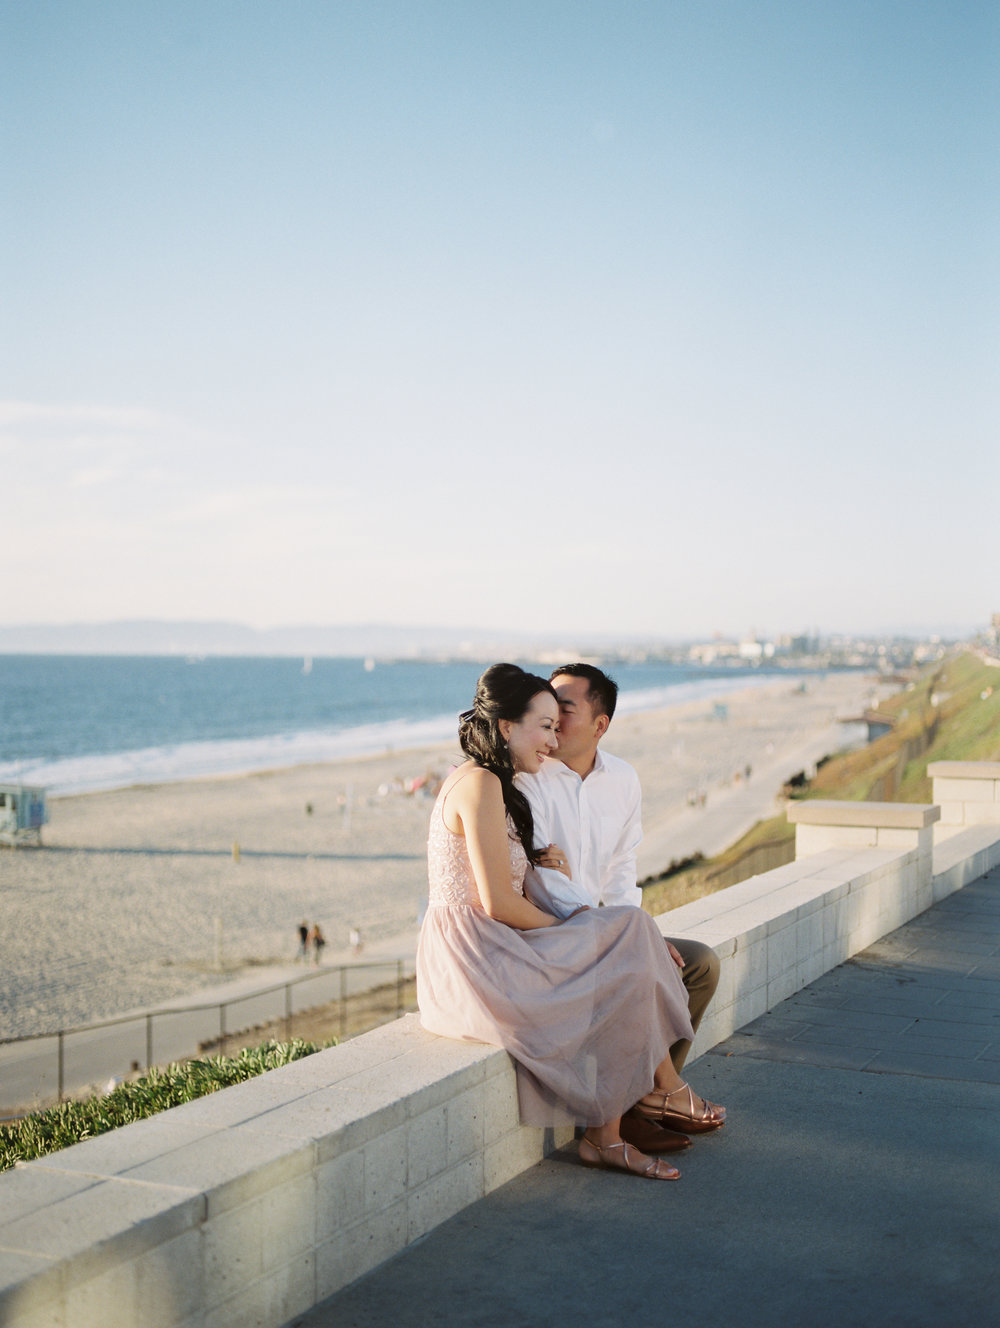 losangeles-callifornia-beach-engagement-photos-pictures-53.jpg